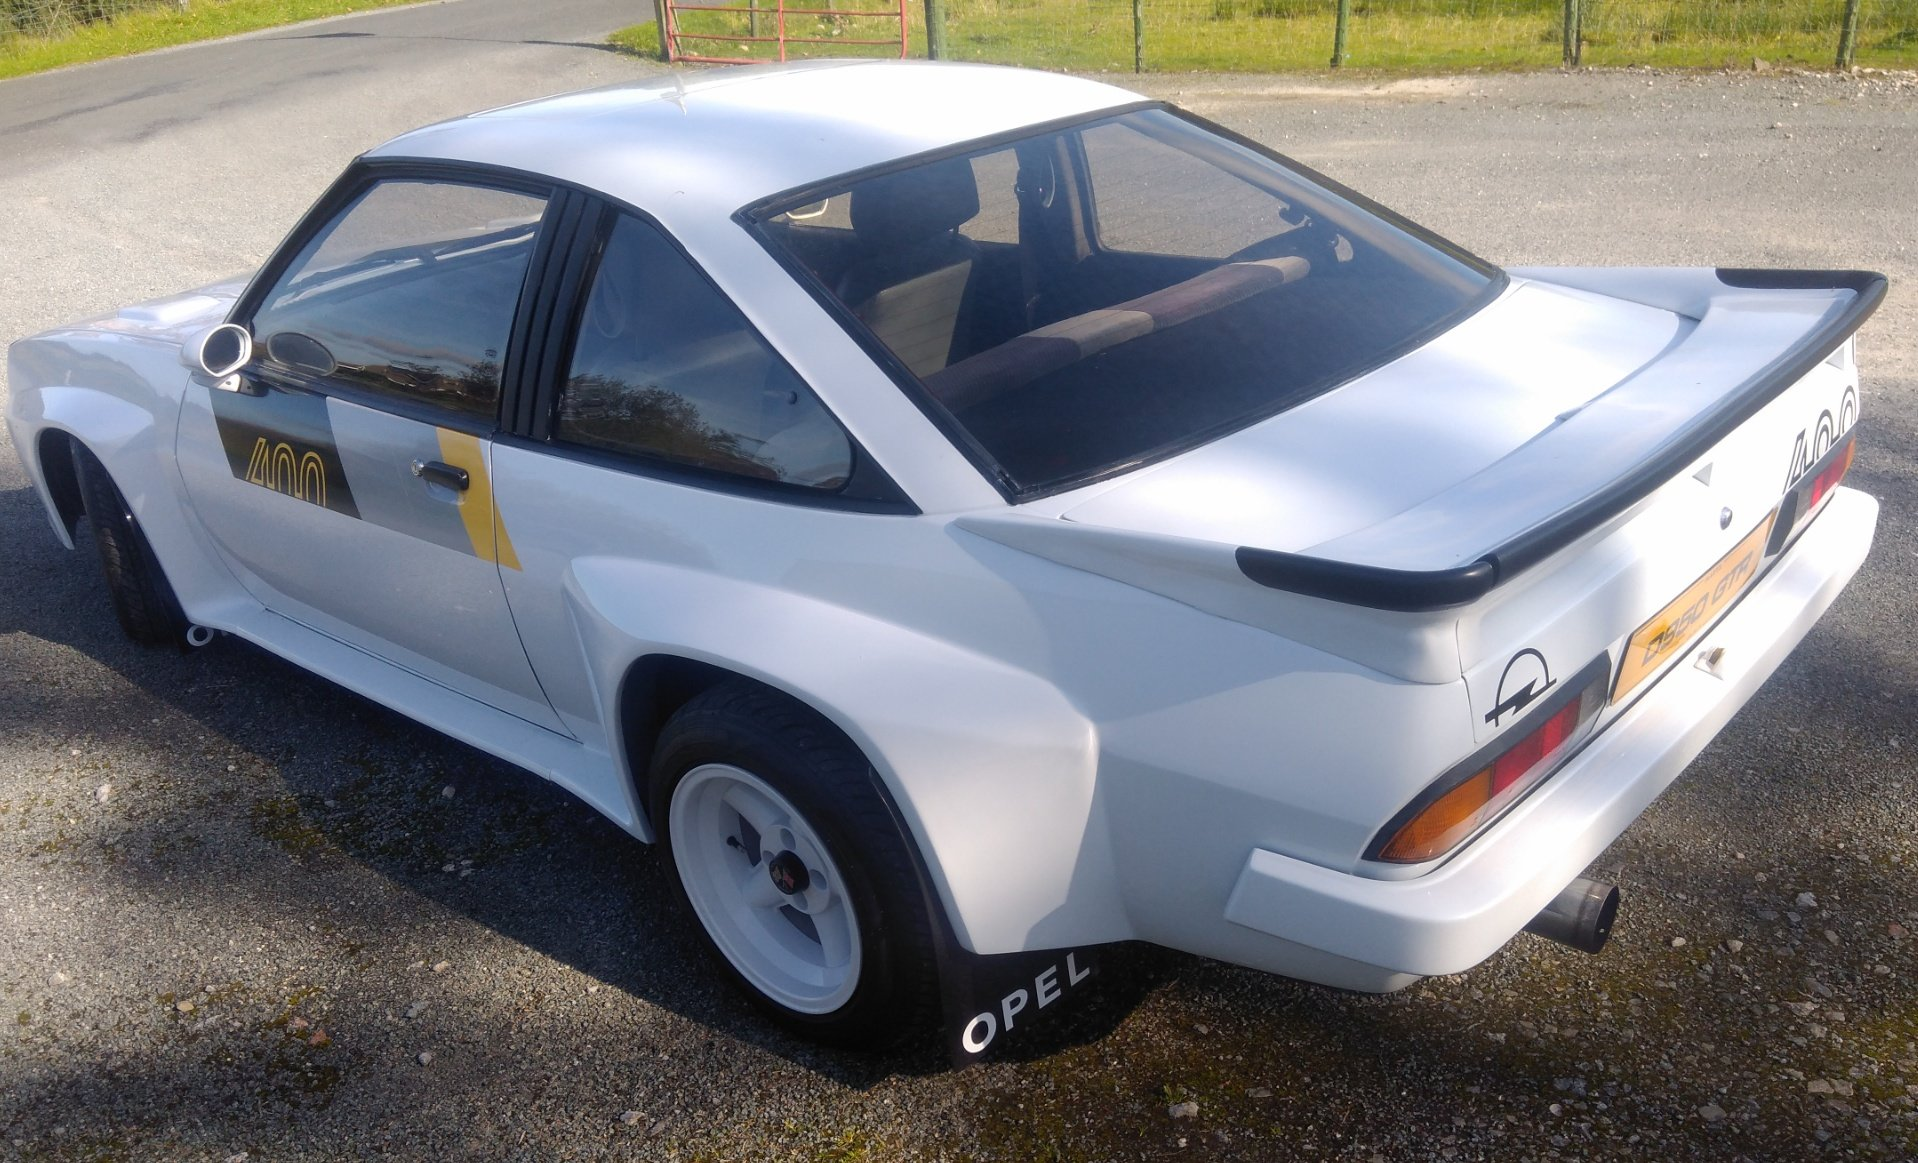 1986 Opel Manta 400r SOLD (picture 6 of 6)